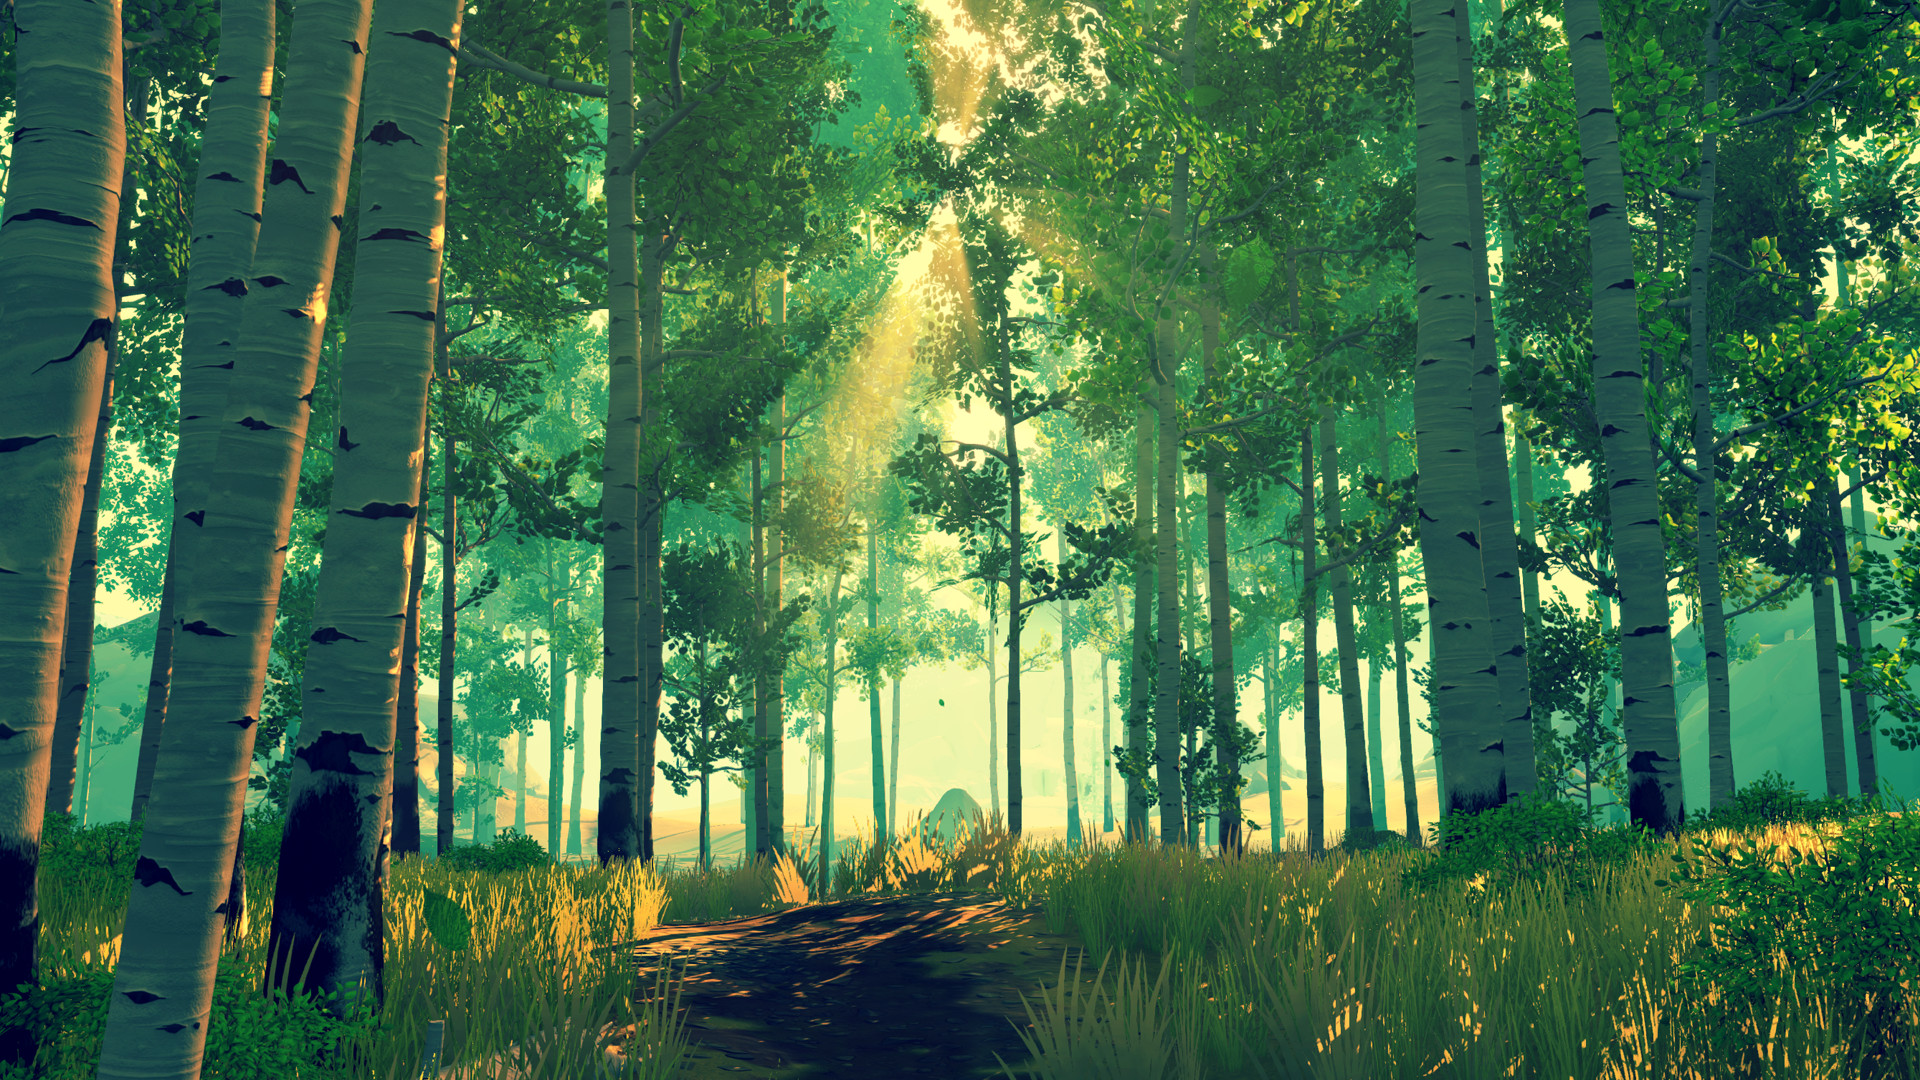 Firewatch screenshot4 on PCGamesCDN you can download cracked unlocked full pc version game direct free download with mirrors and torrent.